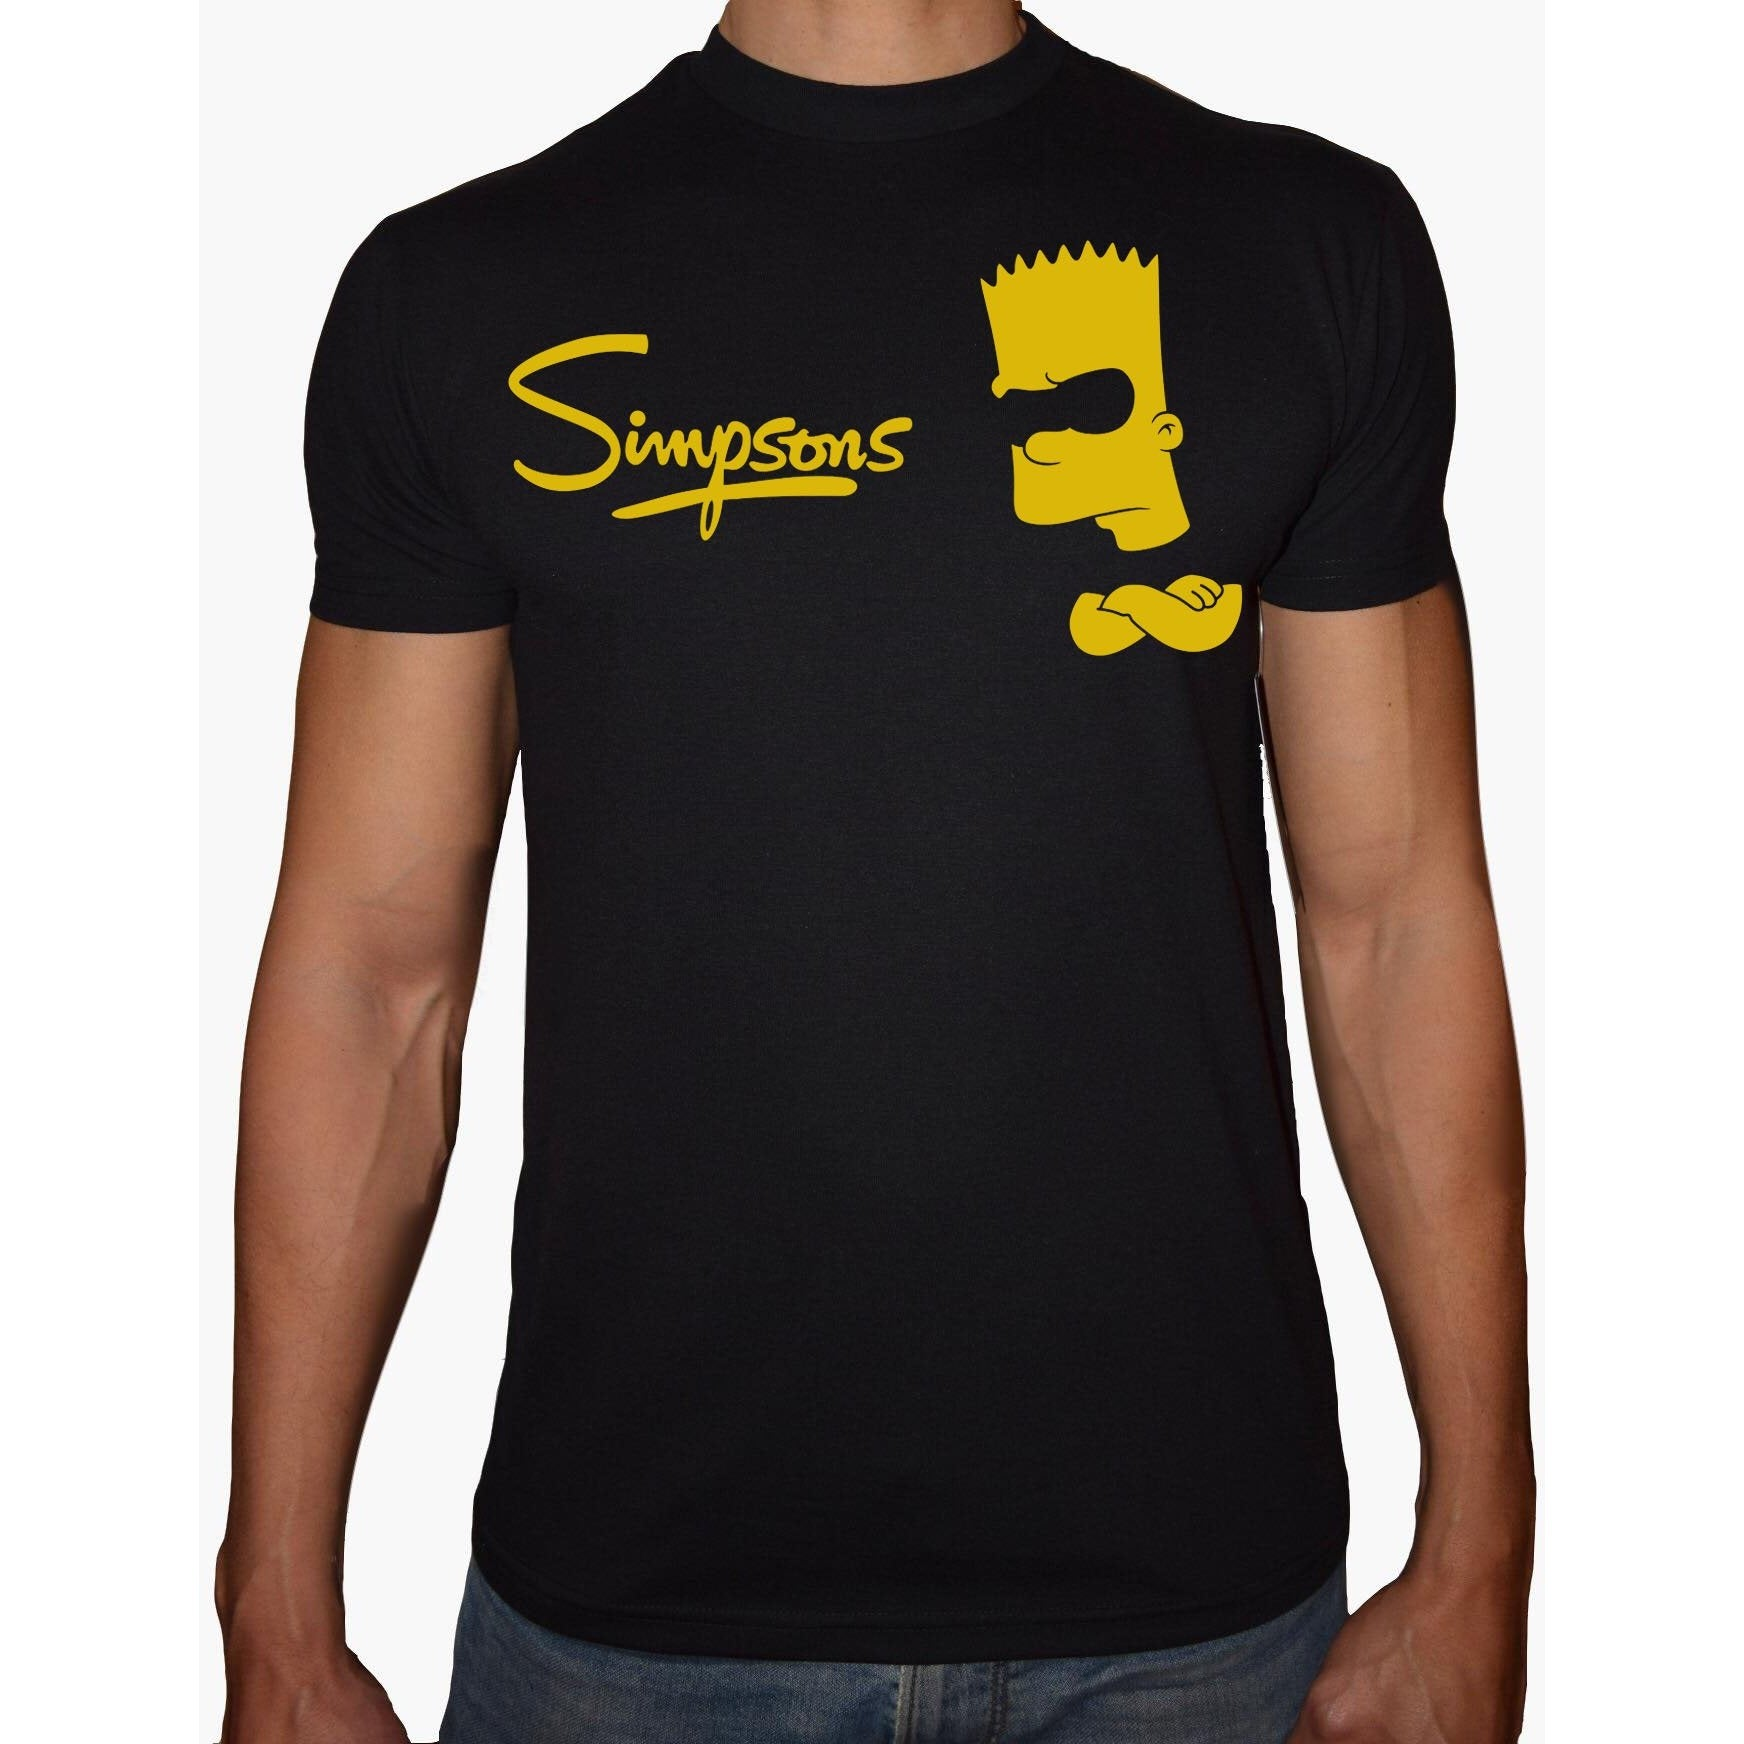 Phoenix BLACK Round Neck Printed T-Shirt Men (The simpsons)